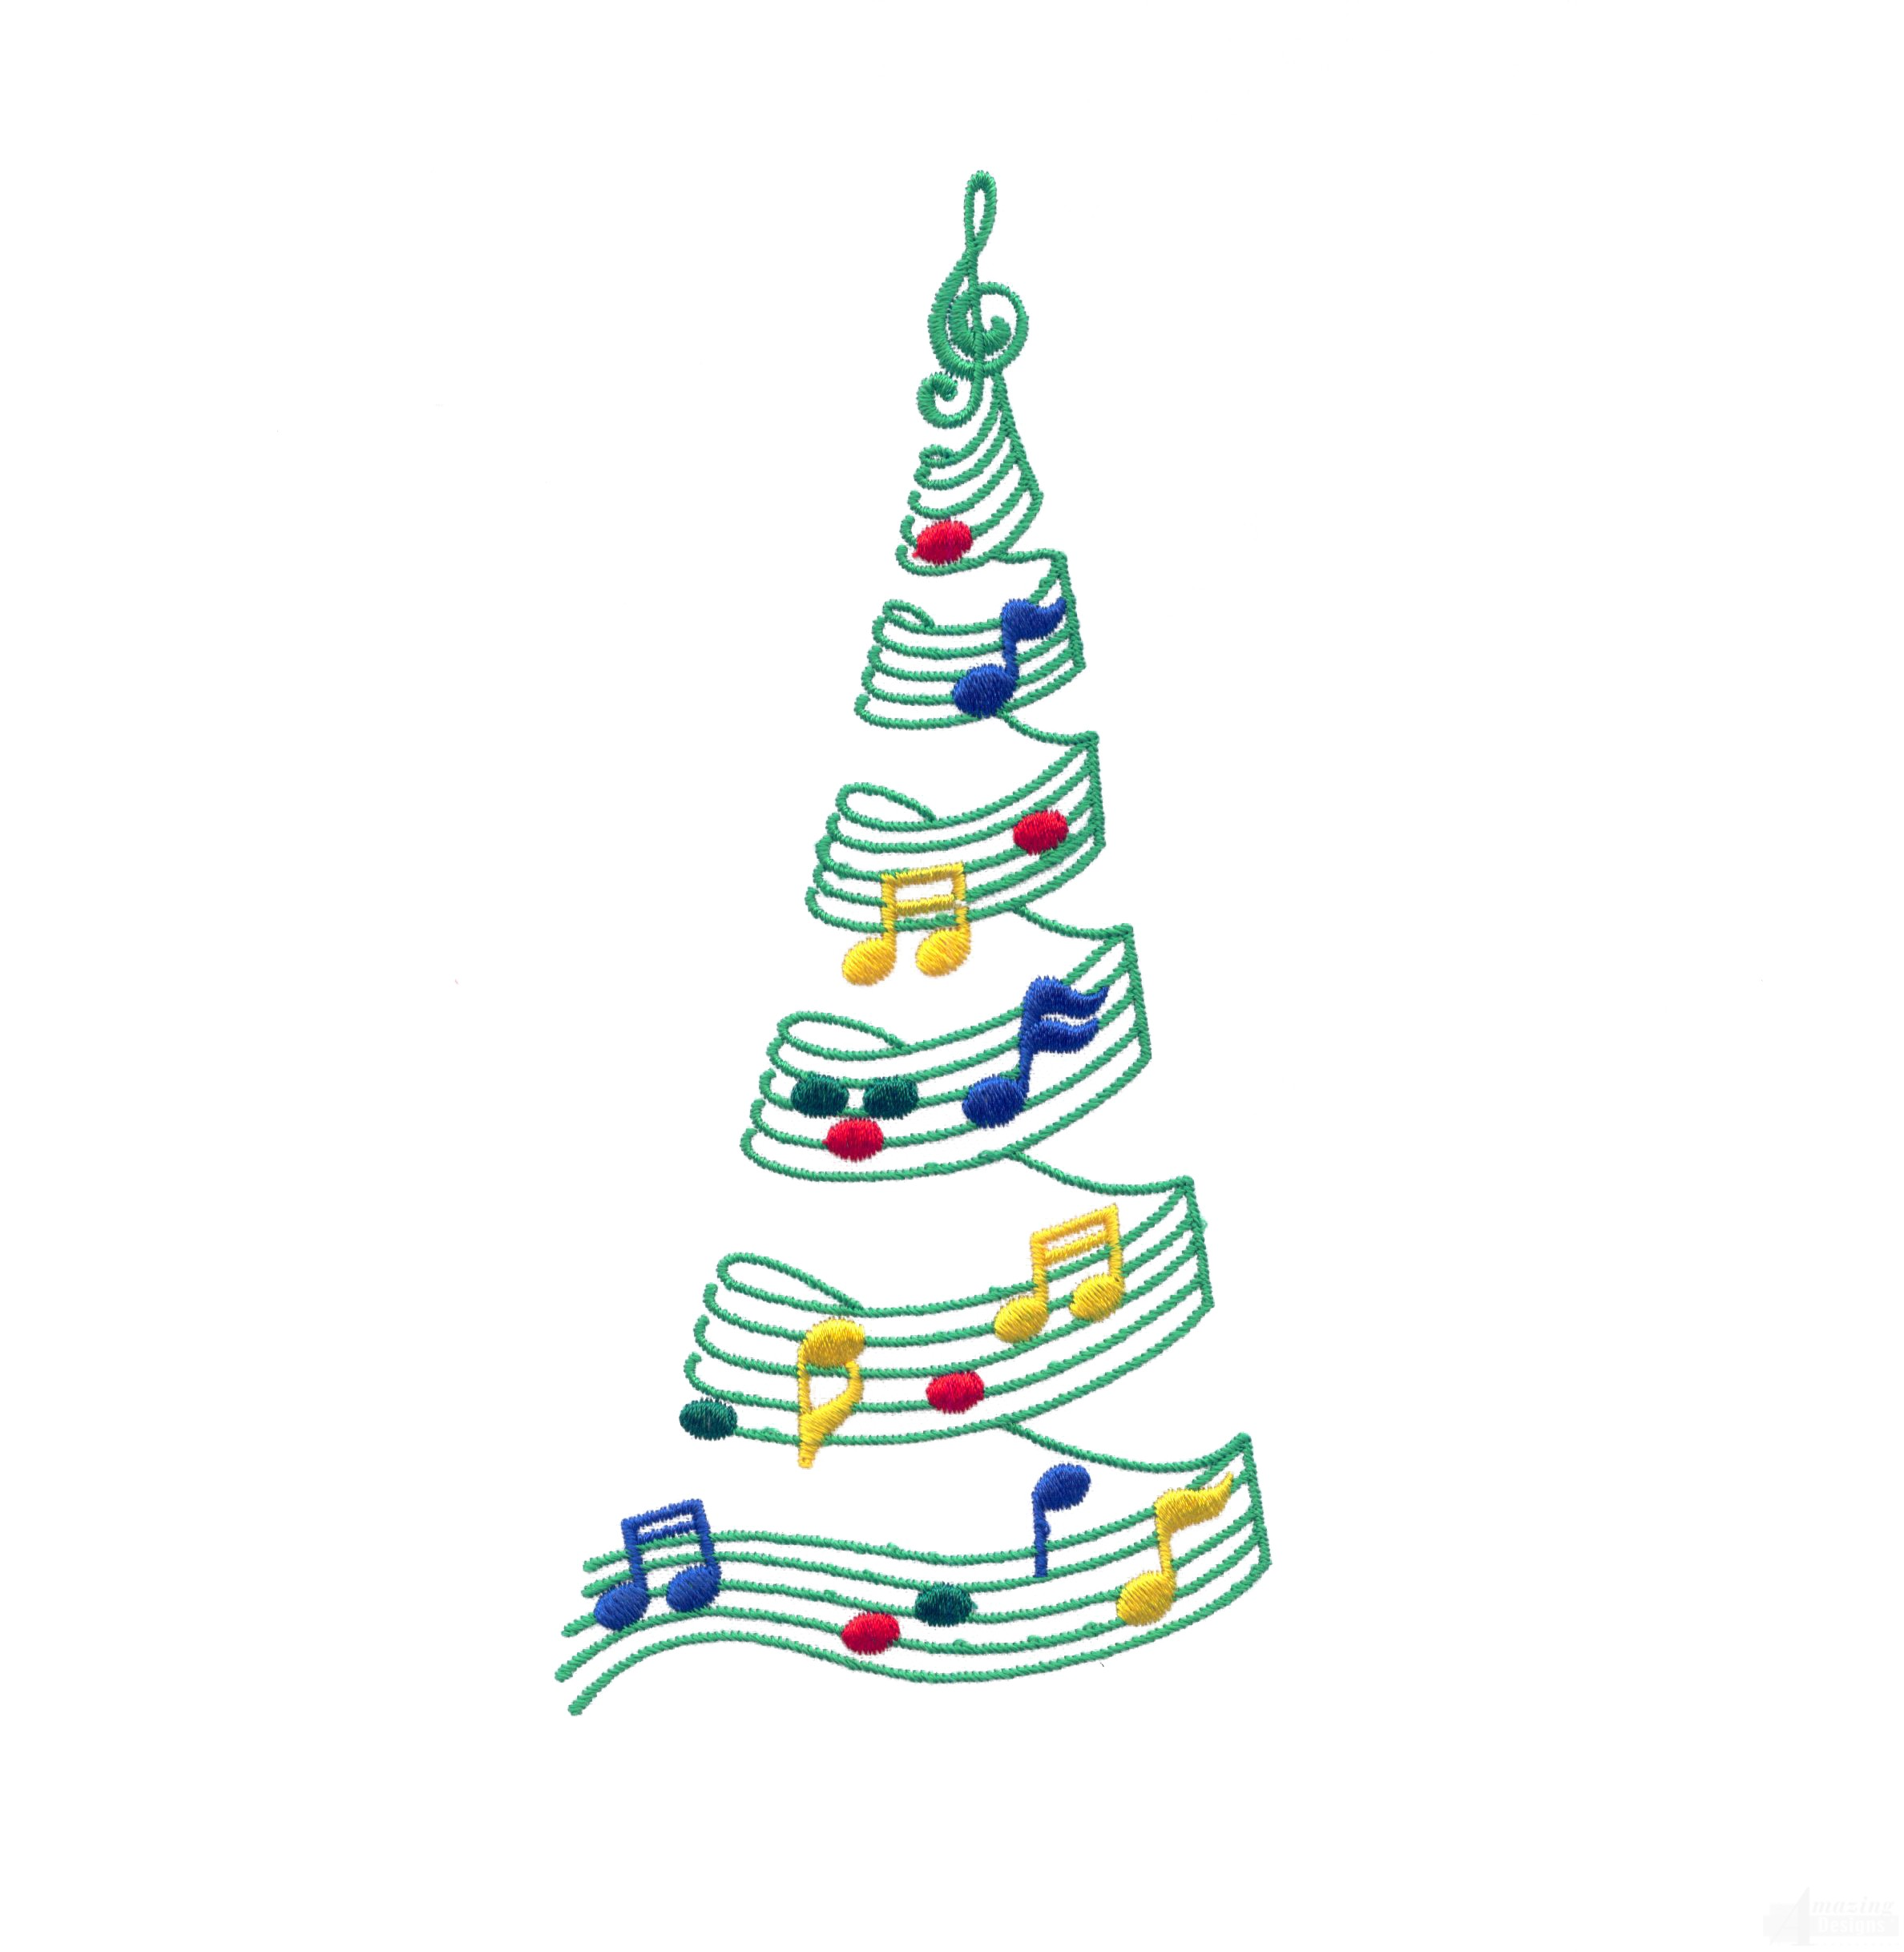 Christmas Music Notes   Free download on ClipArtMag